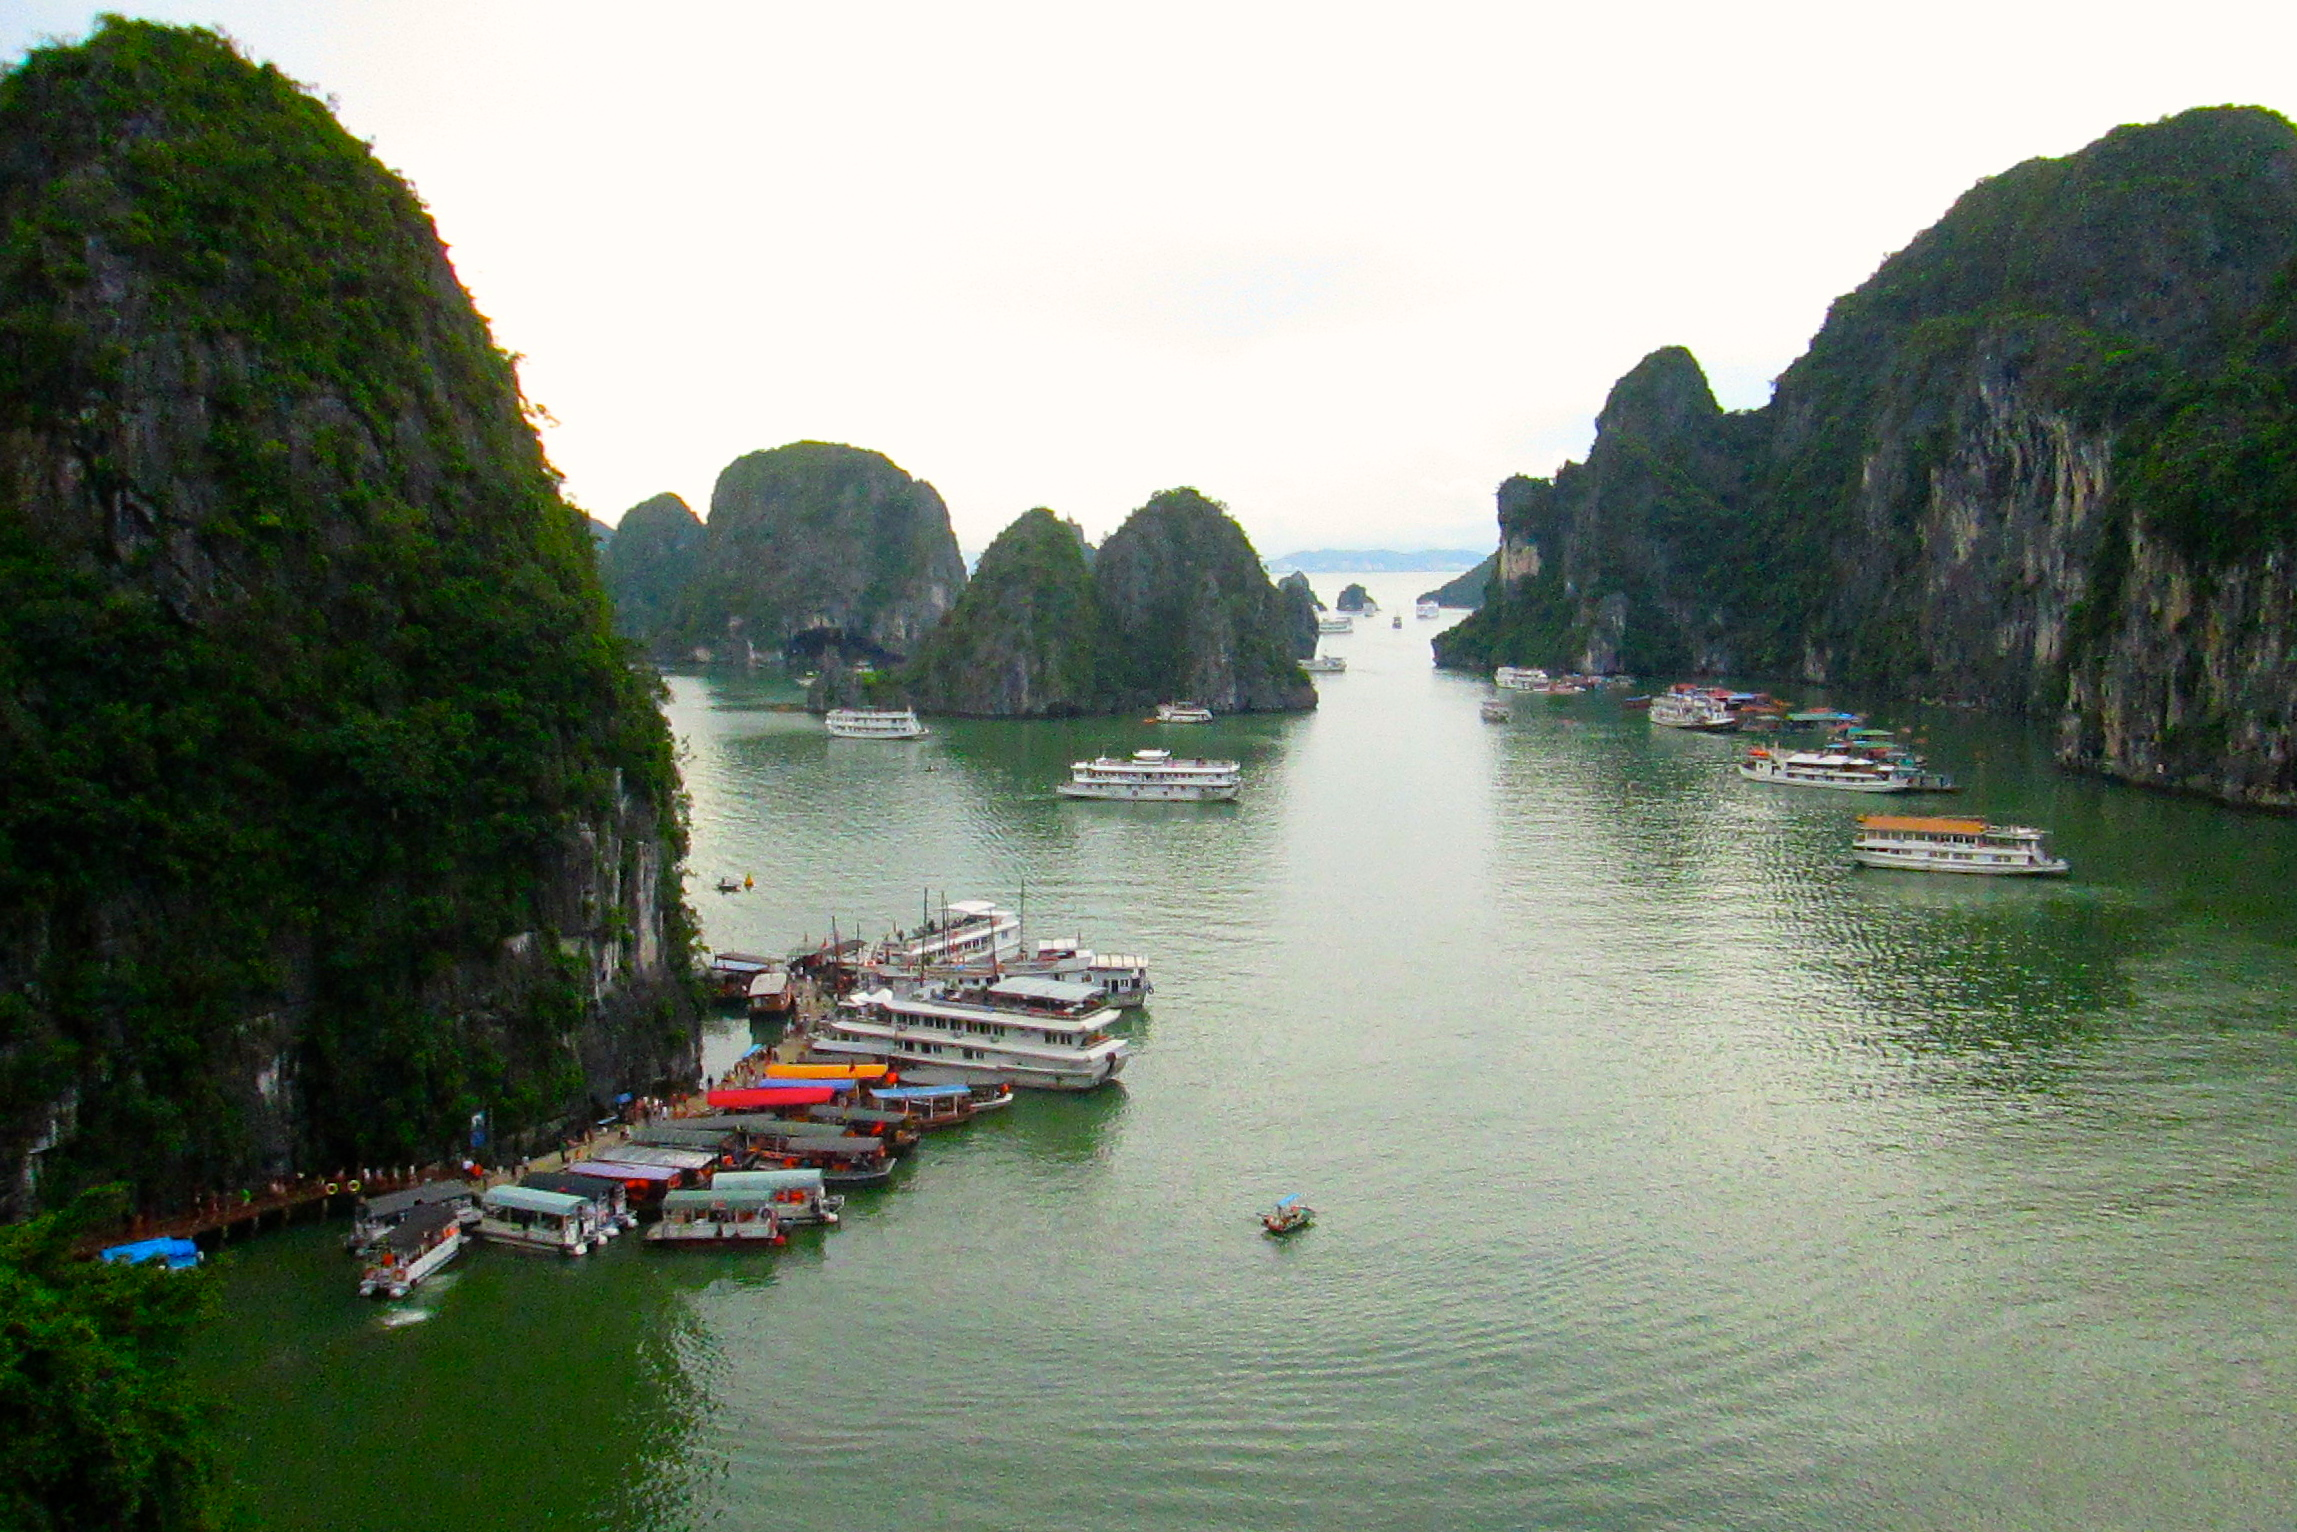 Beneath the calm waters of Halong Bay sleeps a dormant dragon © Nisha D'Souza